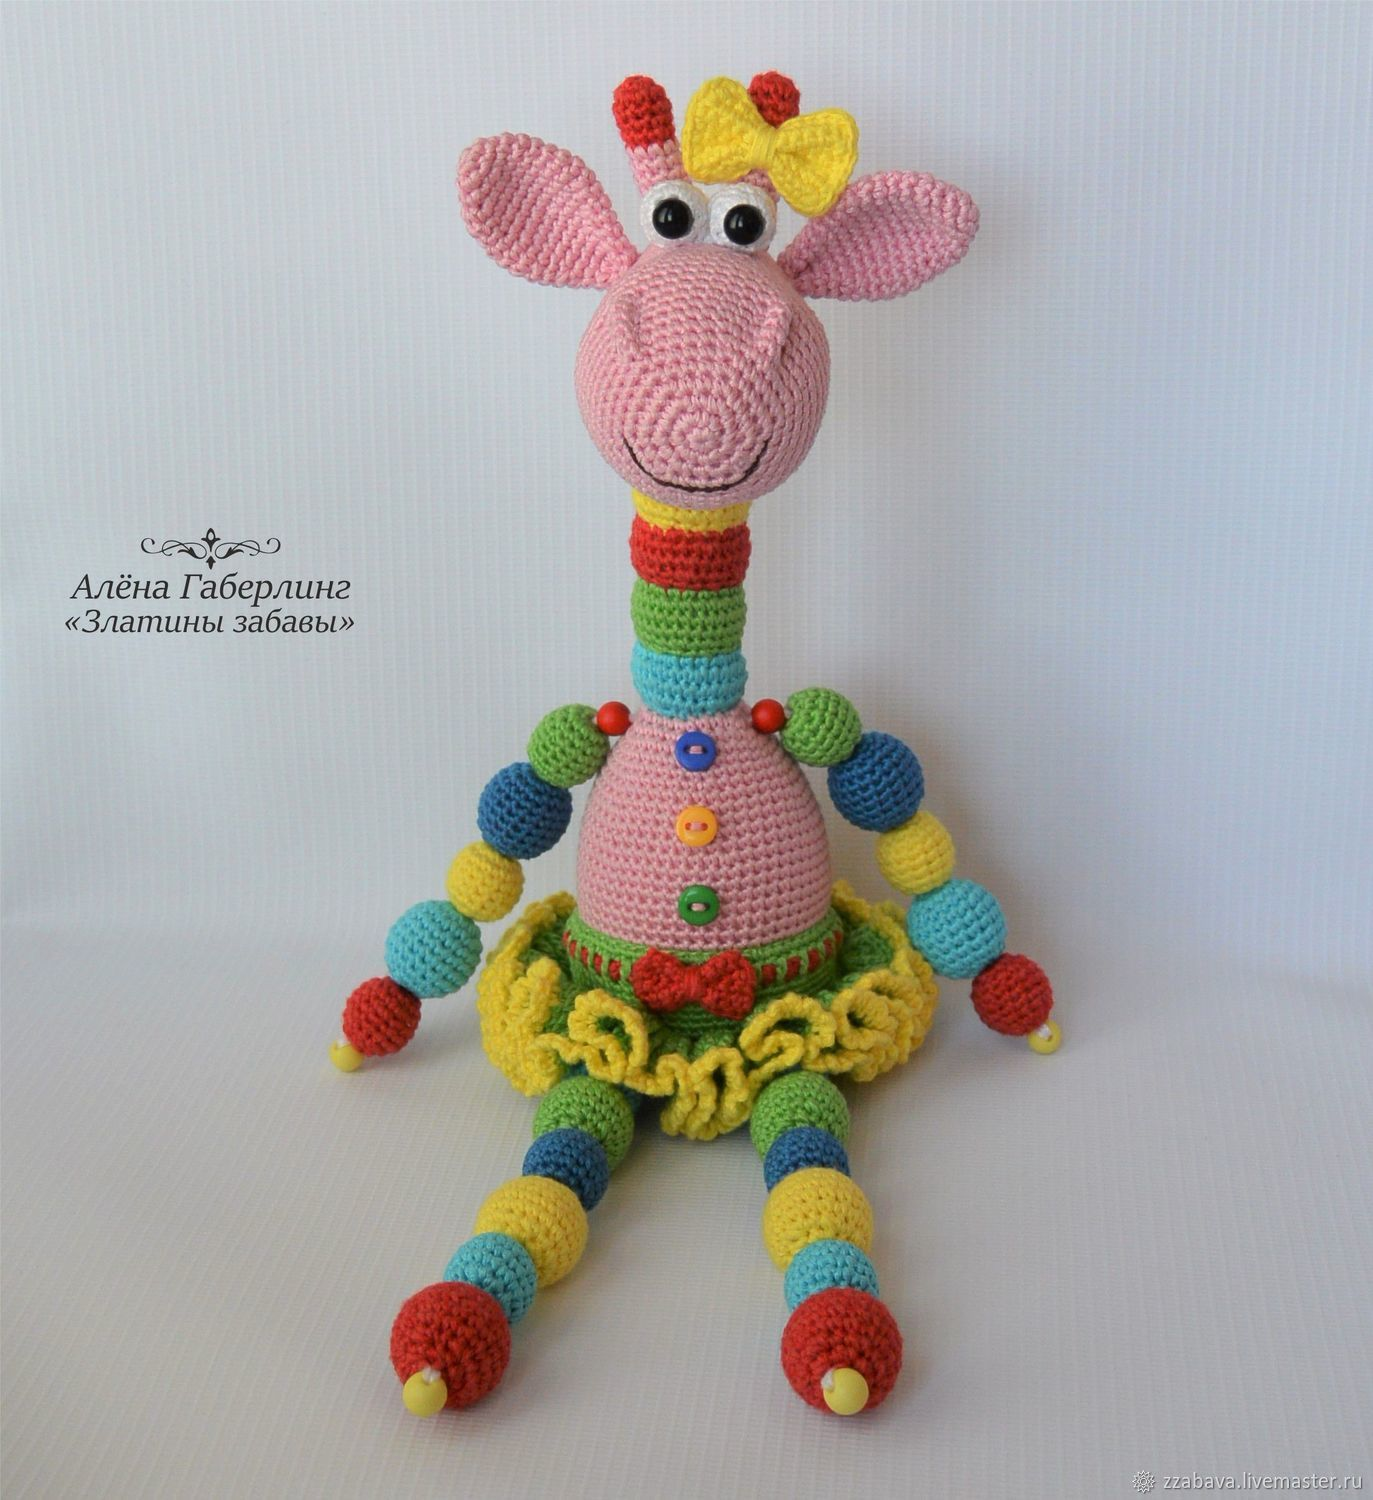 Giraffe Josephine-knitted toy with hands-beads, Teethers rattles, Tomsk,  Фото №1